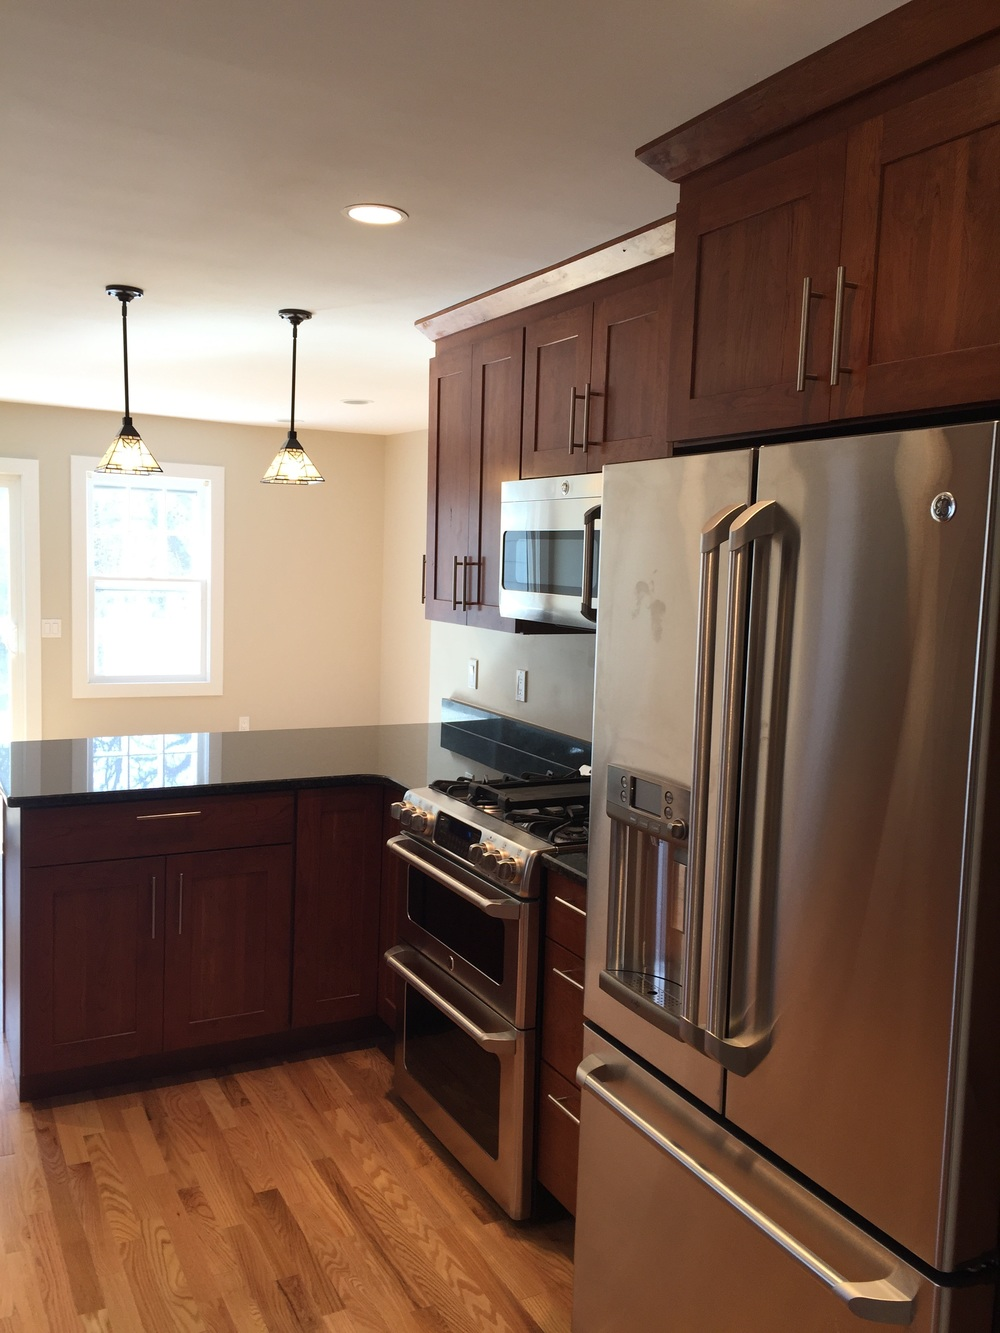 Shaw Remodeling Kitchen Renovation Waterford CT.JPG